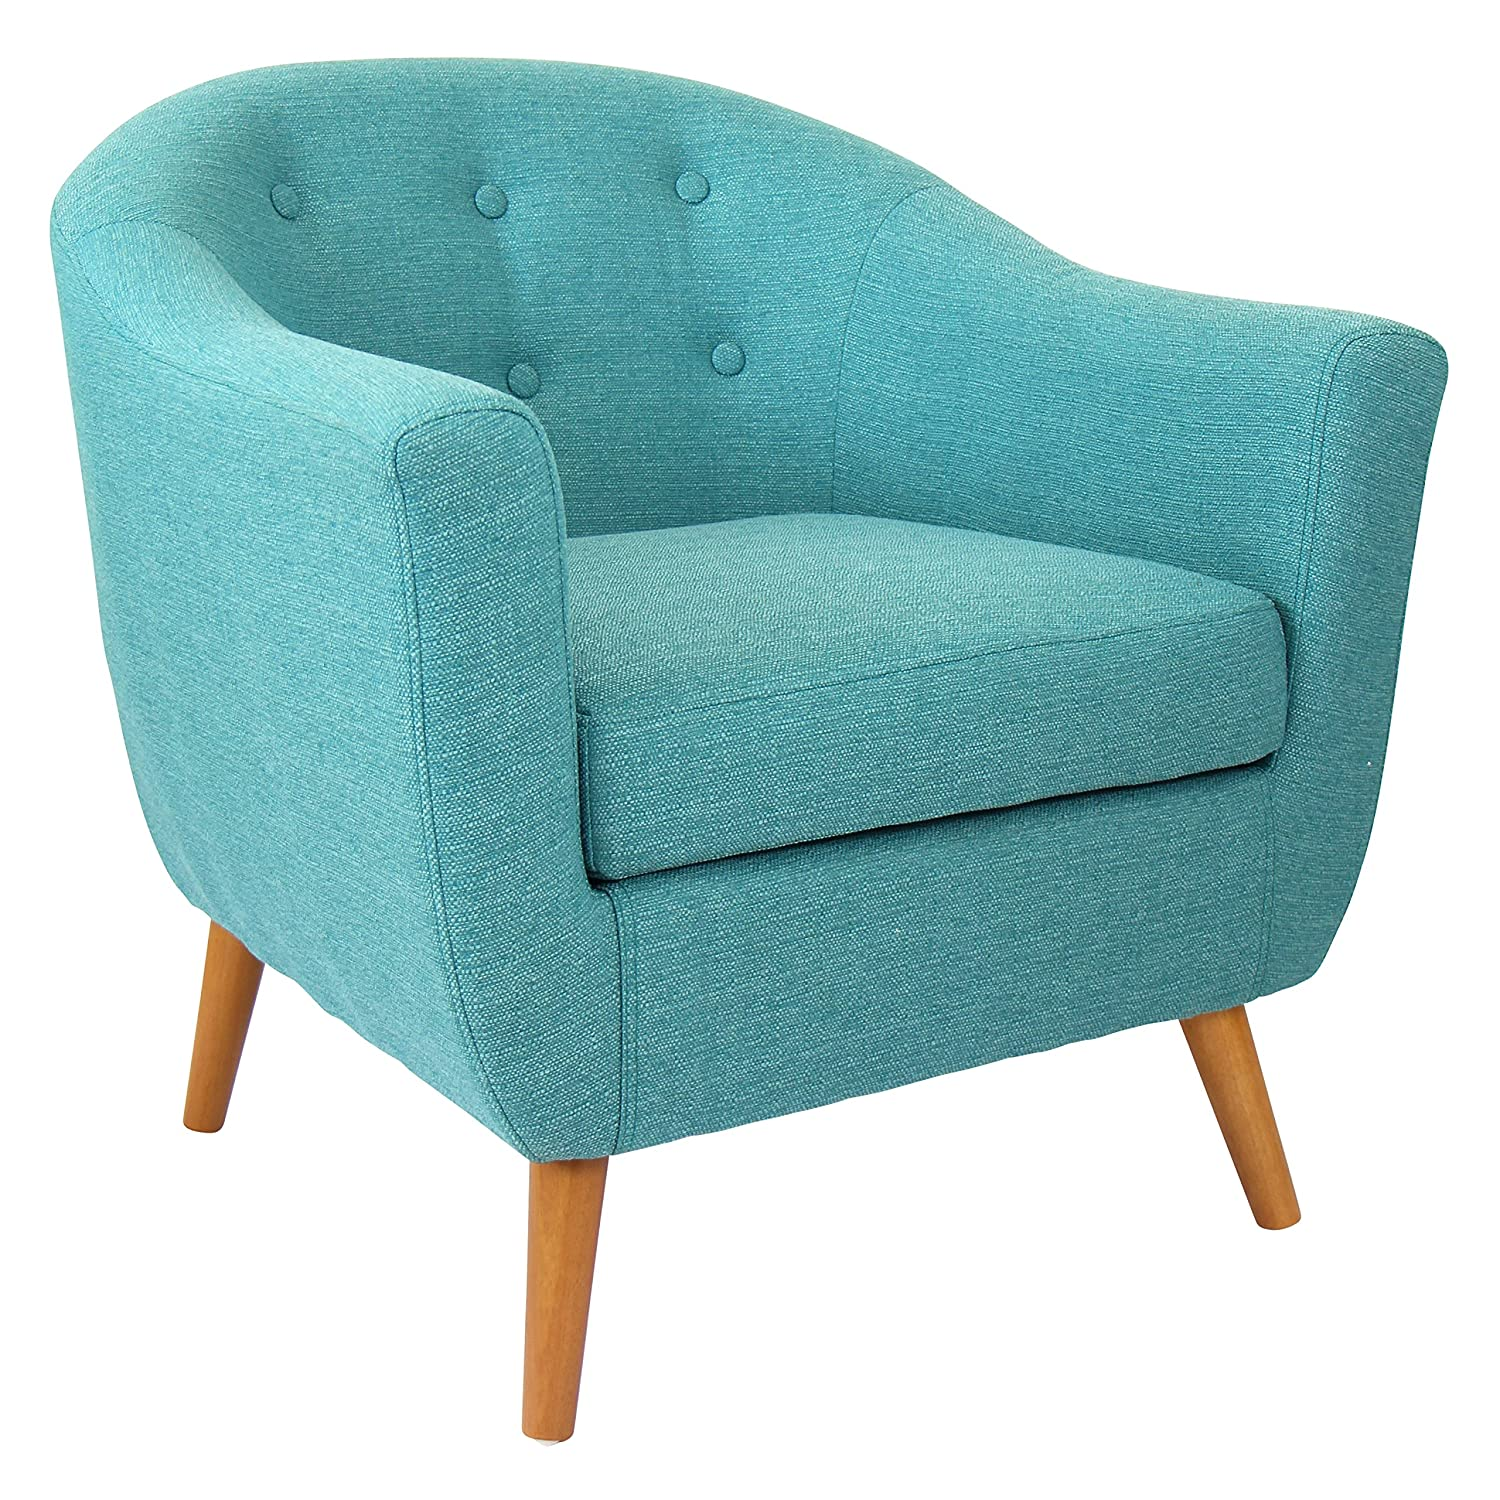 Lumisource Rockwell Chair, Teal - Amazon.com: Chairs - Living Room Furniture: Home & Kitchen